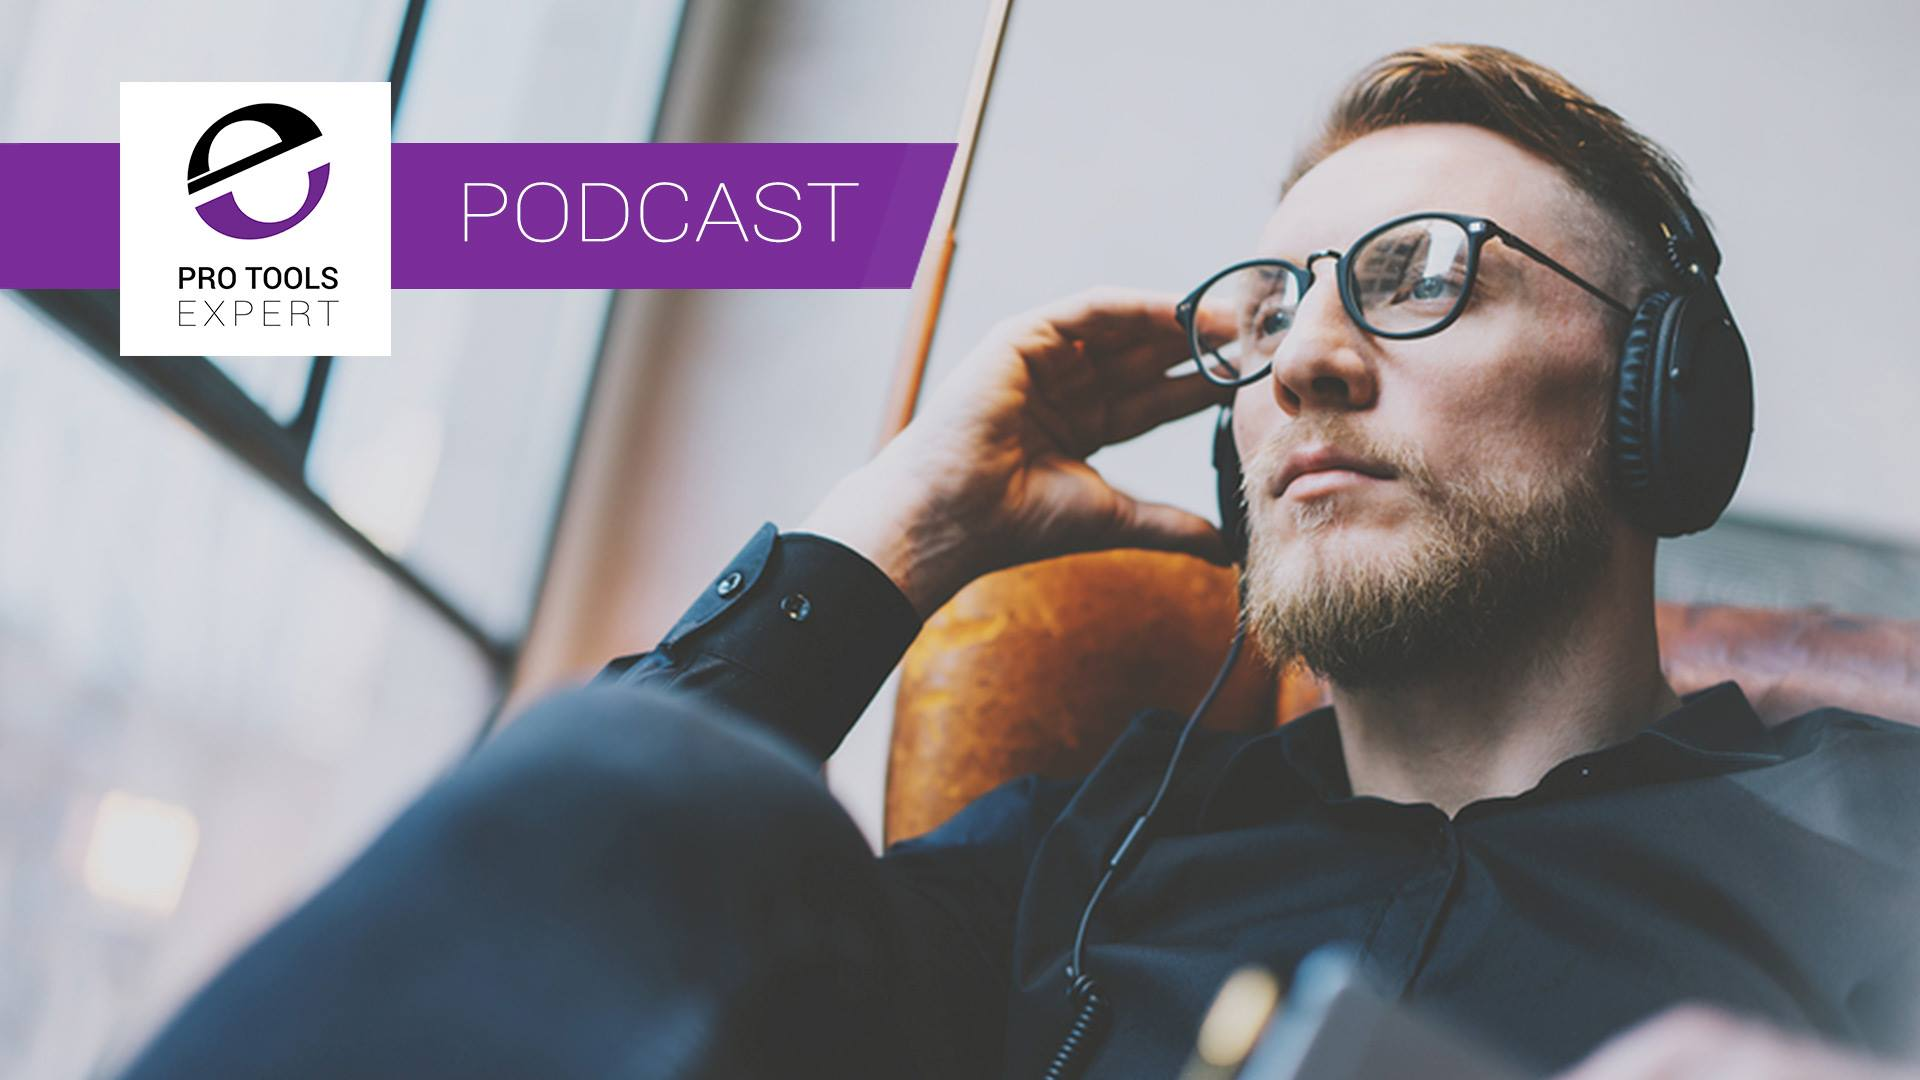 Pro Tools Expert Podcast Episode 256